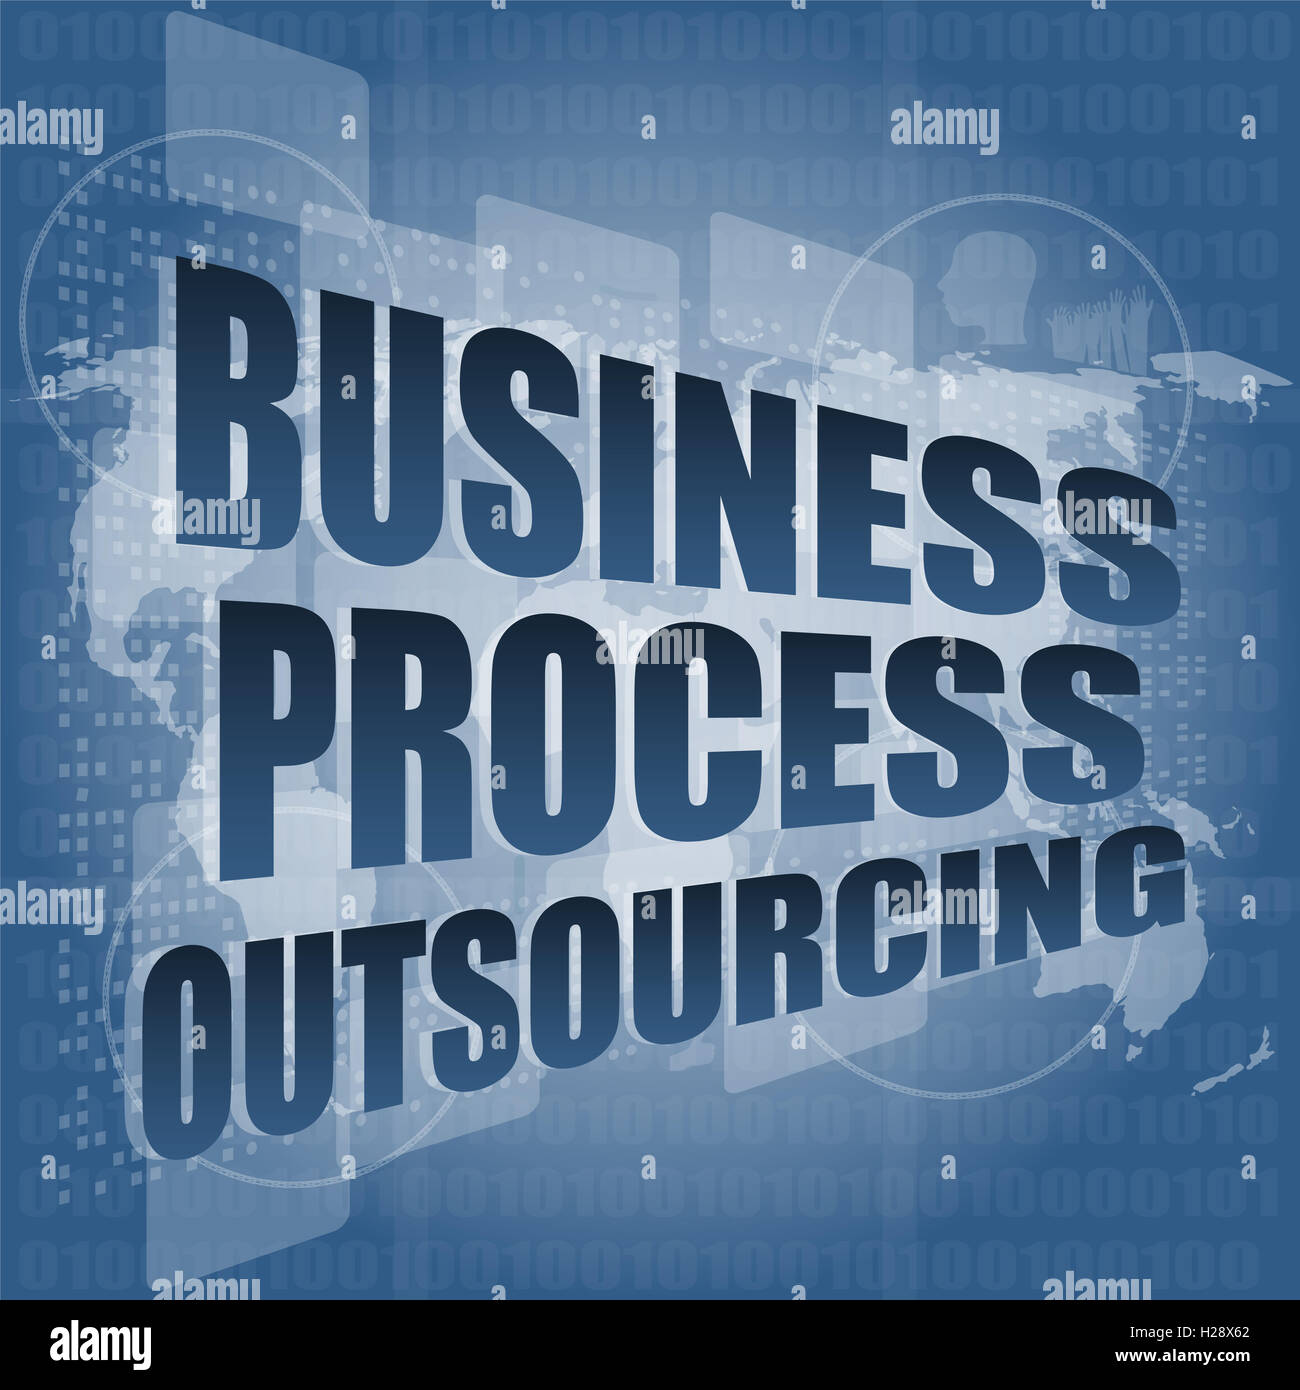 business process outsourcing interface hi technology - Stock Image